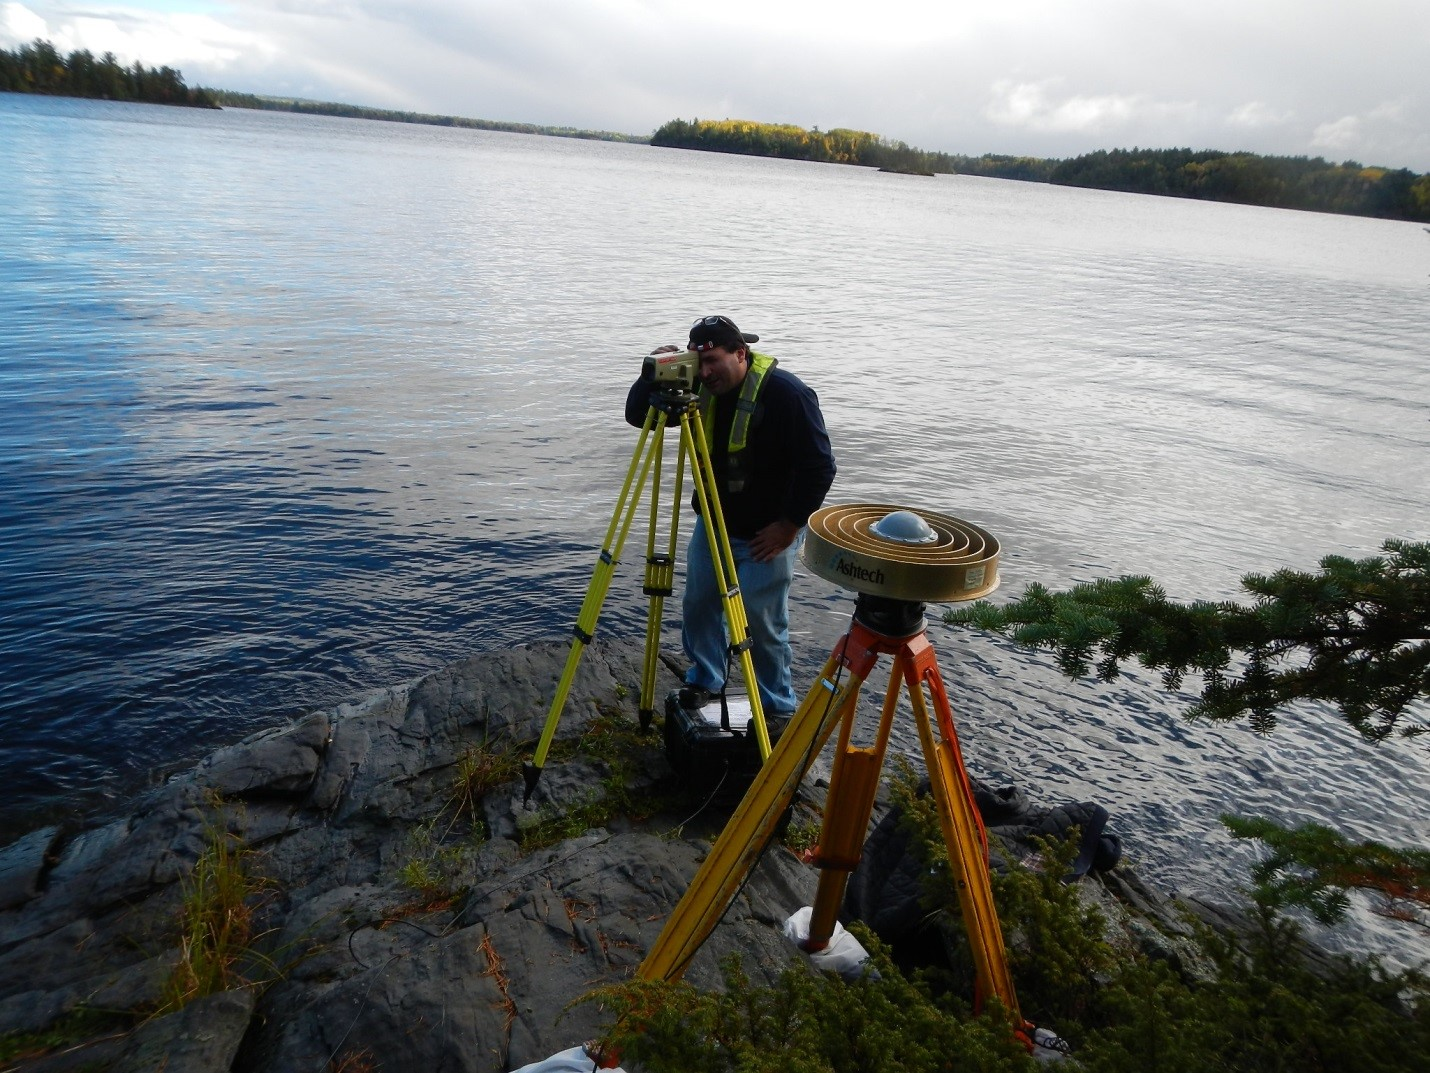 Natural Resources Canada Geodetic Engineer Jason Silliker uses survey equipment on the Rainy-Namakan Lake system to help standardize water level measurements. Credit: U.S. Geological Survey